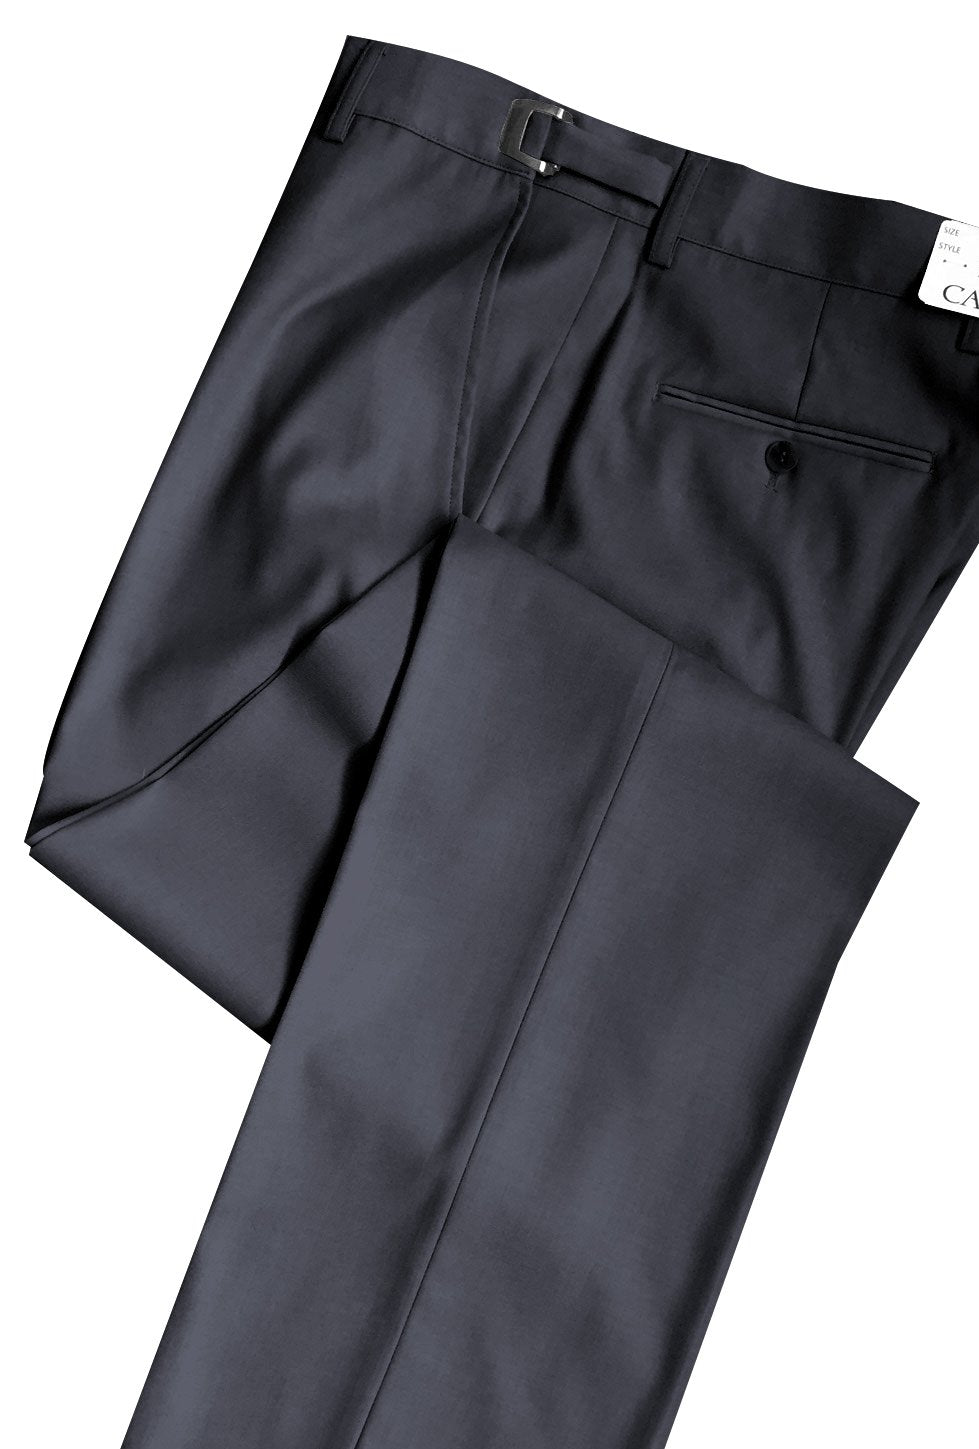 Charcoal 150's SLIM-FIT Flat Front Suit Pants - Tuxedo Club